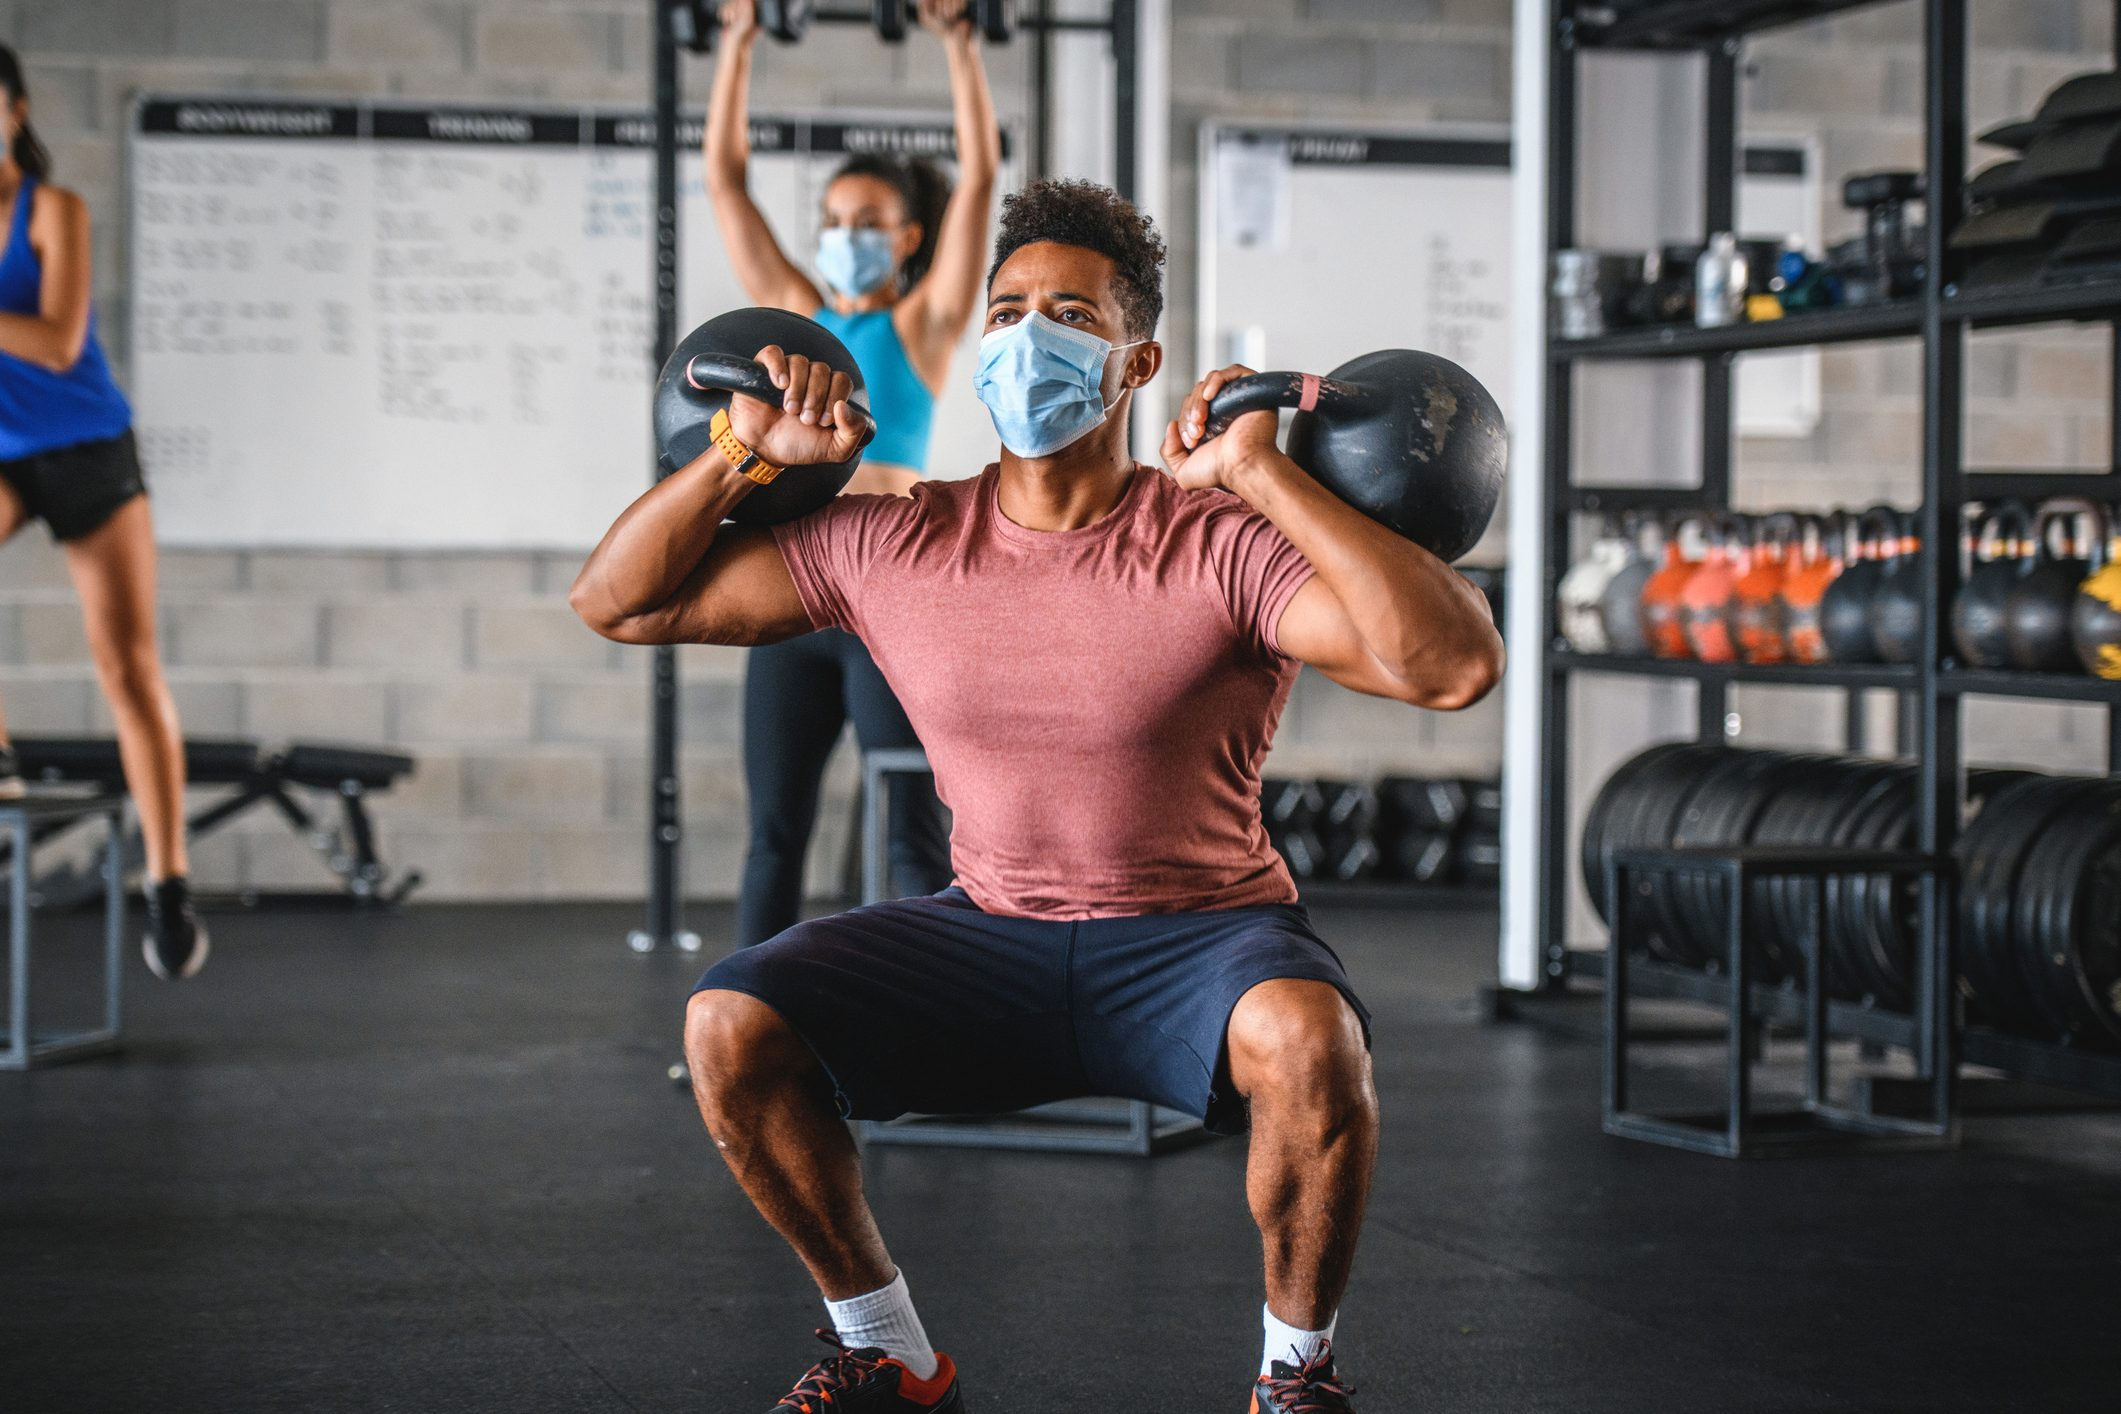 Masked Athlete Doing 2-Kettlebell Front Squat in Gym